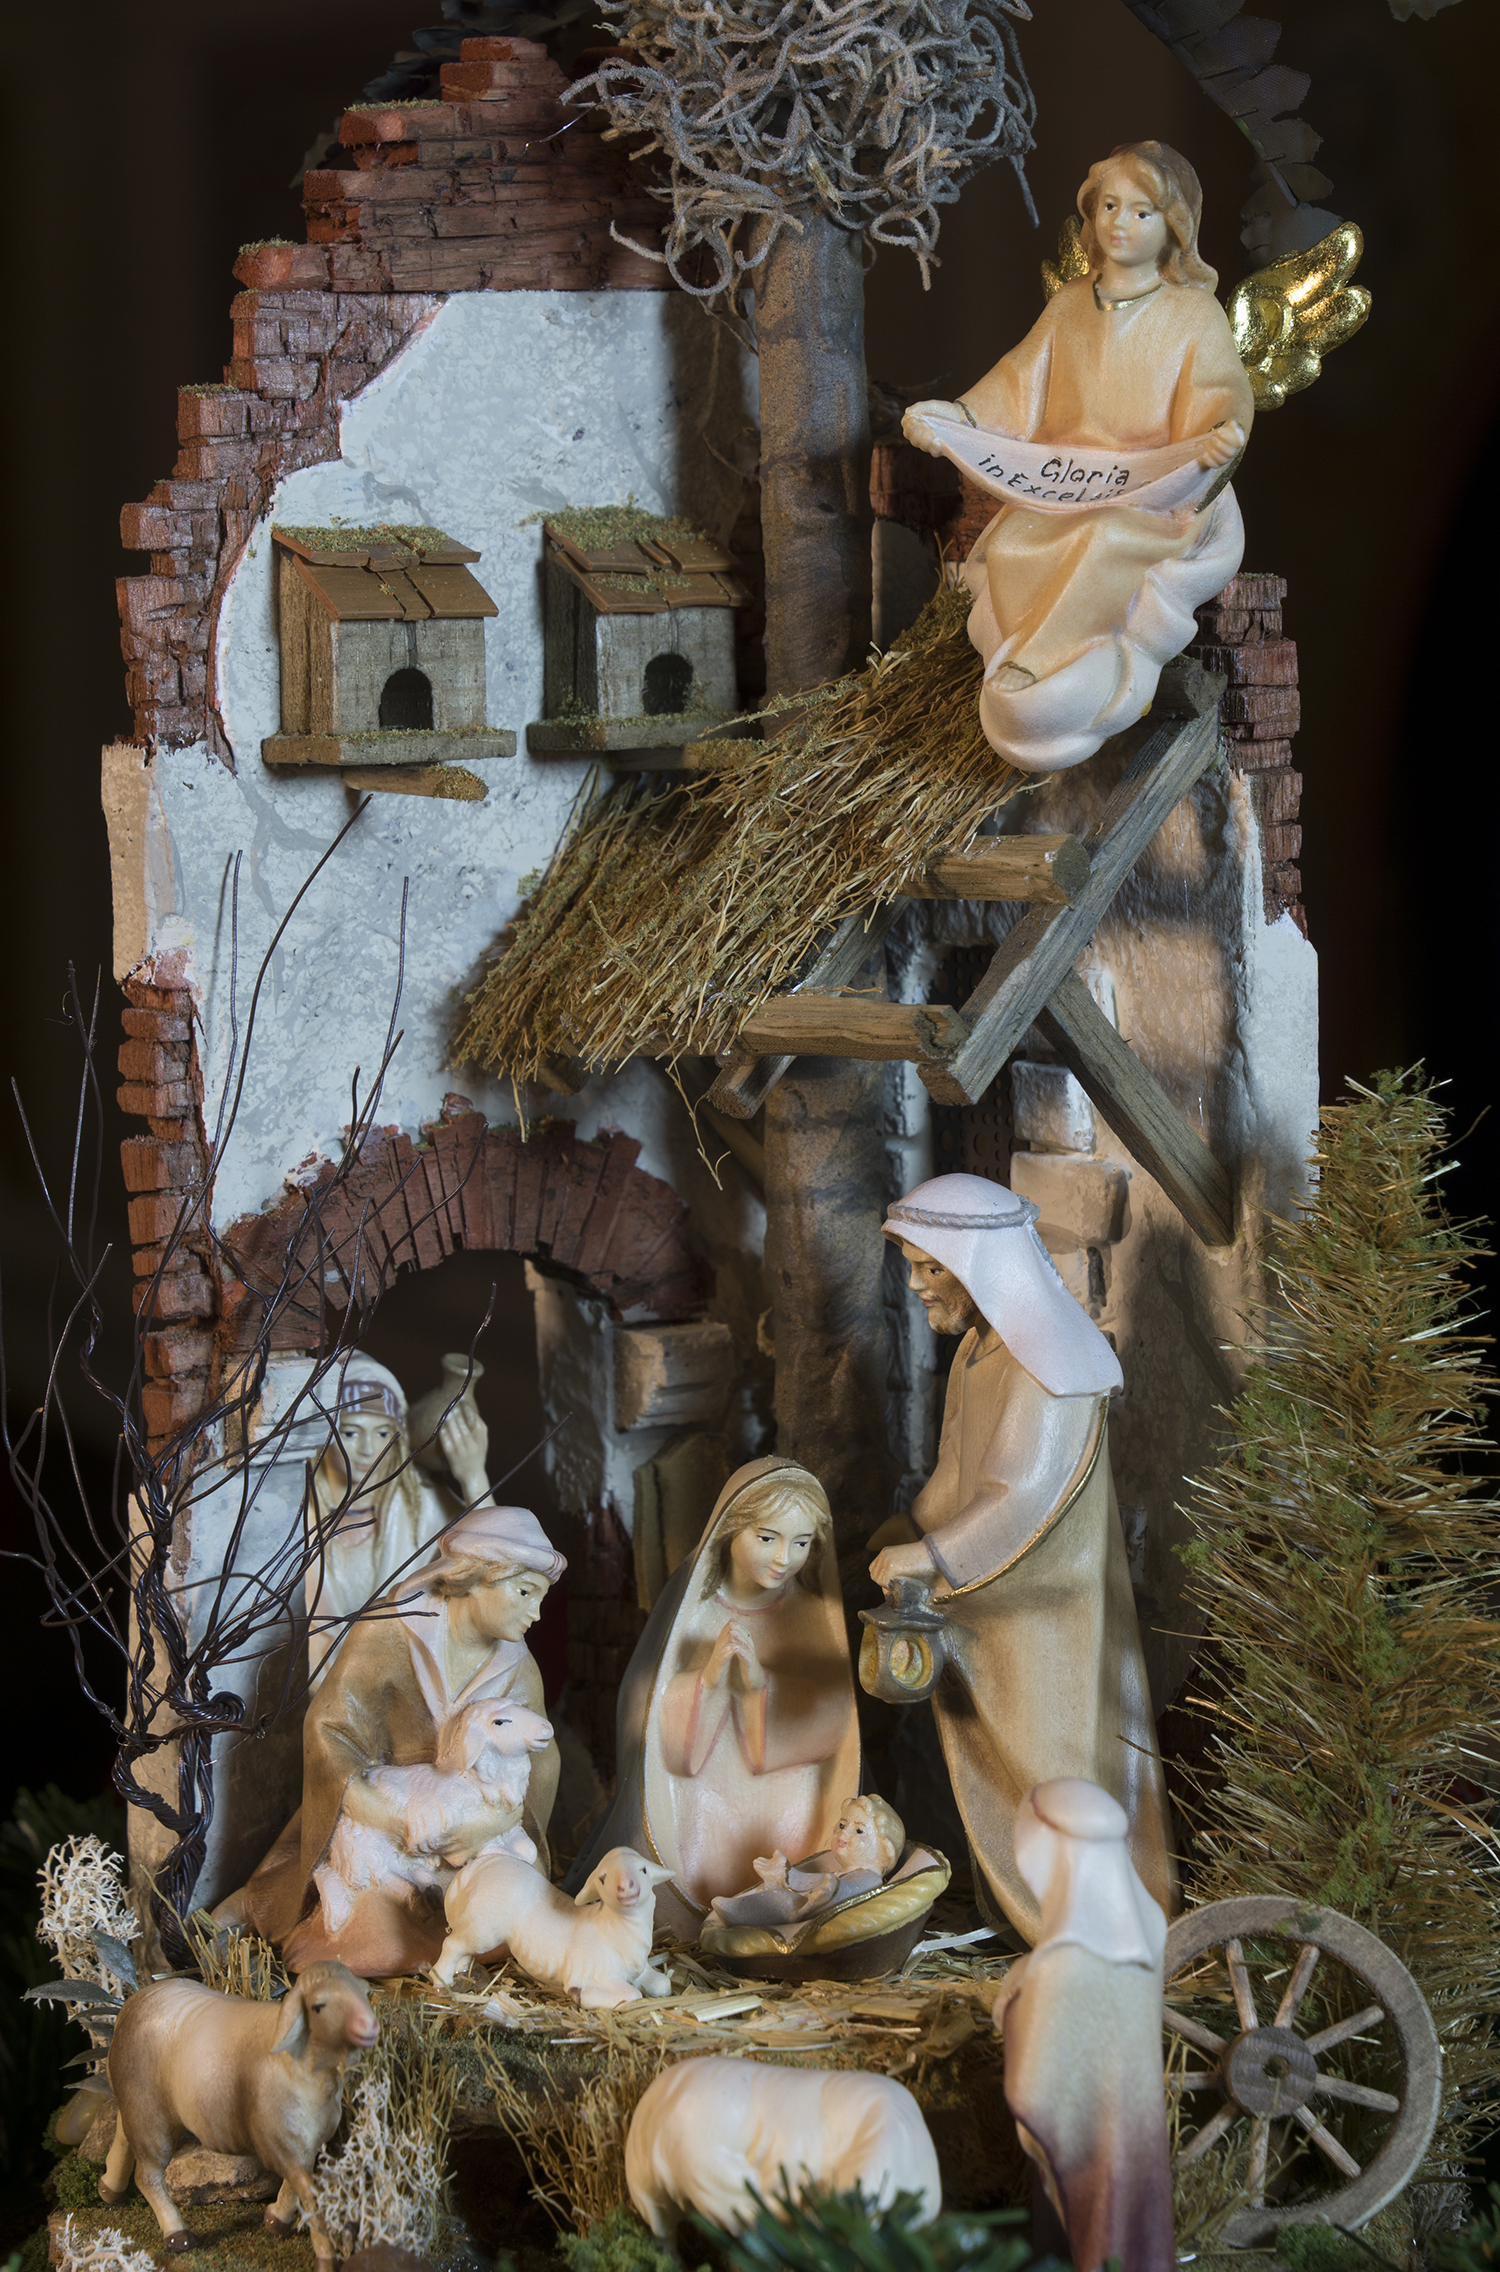 """Figure 12:This presentation of a Nativity """"in the round,"""" nestled inside an antique French cloche (a glass covering for garden plants to prevent frost damage), features many finely crafted details, including handmade trees, crumbling ancient bricks, dove houses above the roof, and a small stream. The setting was created by  Navidad Nativities  of Bucks County, Pennsylvania, and the figures were carved from mountain maple and painted in the studios of Ulrich Perathoner at Val Gardena in the Italian Alps. On loan from Navidad Nativities, Bucks County, Pennsylvania."""